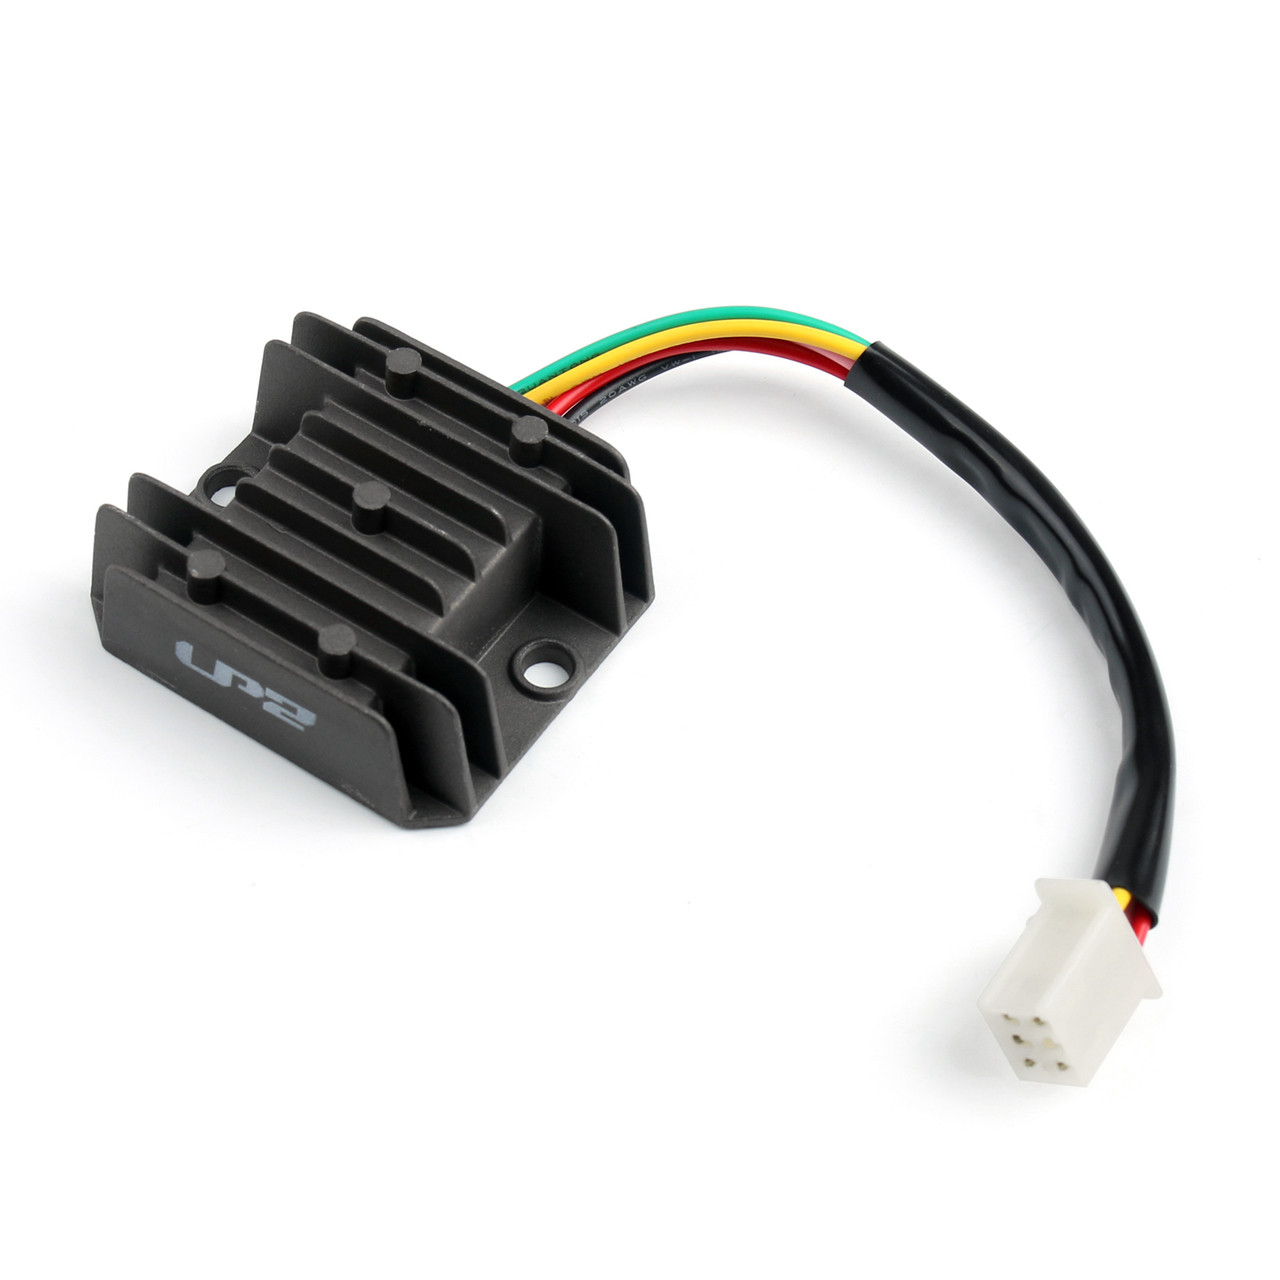 Regulator Voltage Rectifier Honda FXD125cc CG125cc